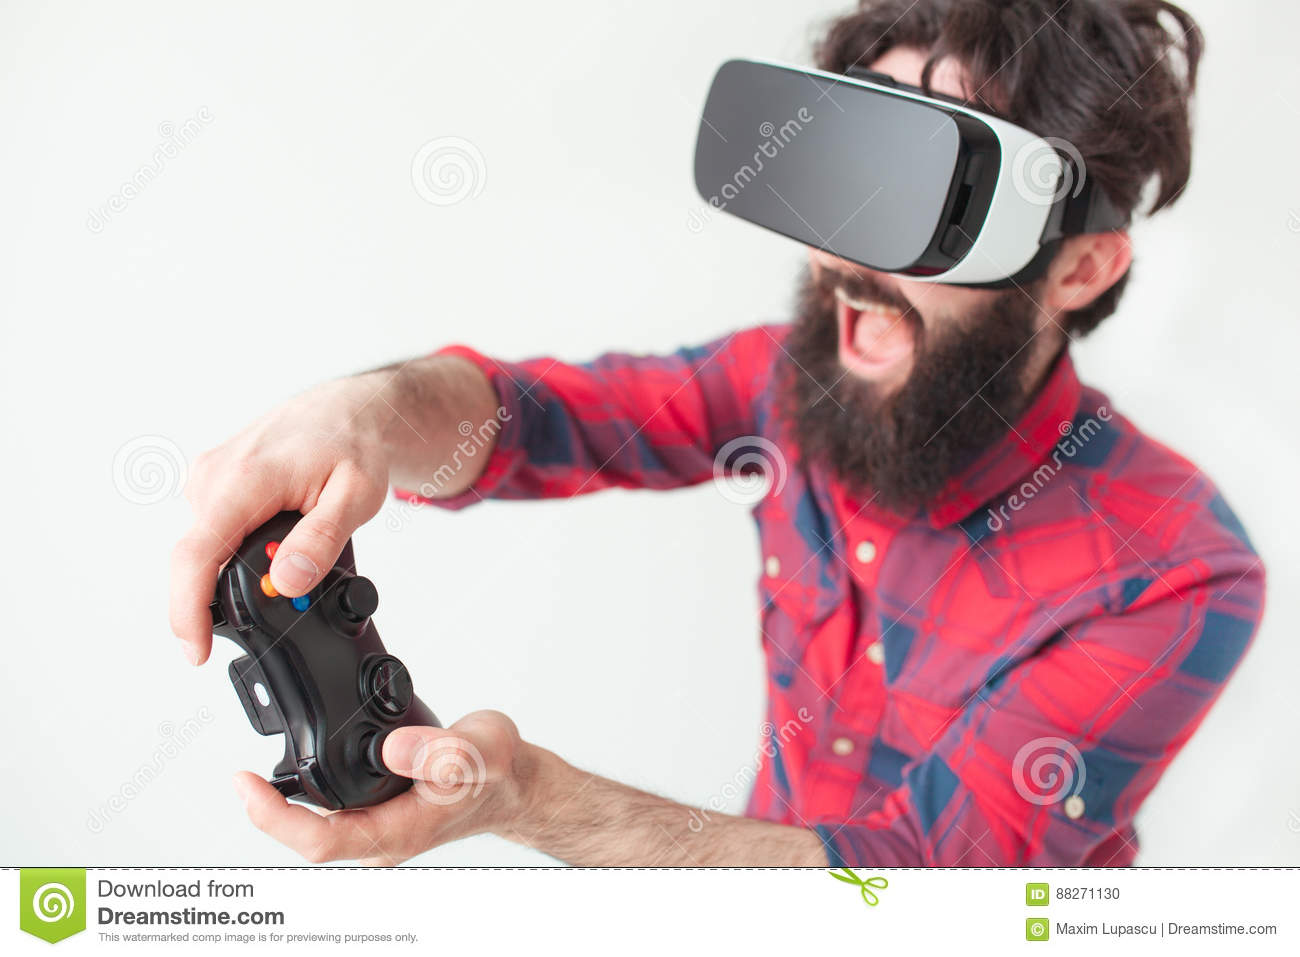 Man playing a VR game